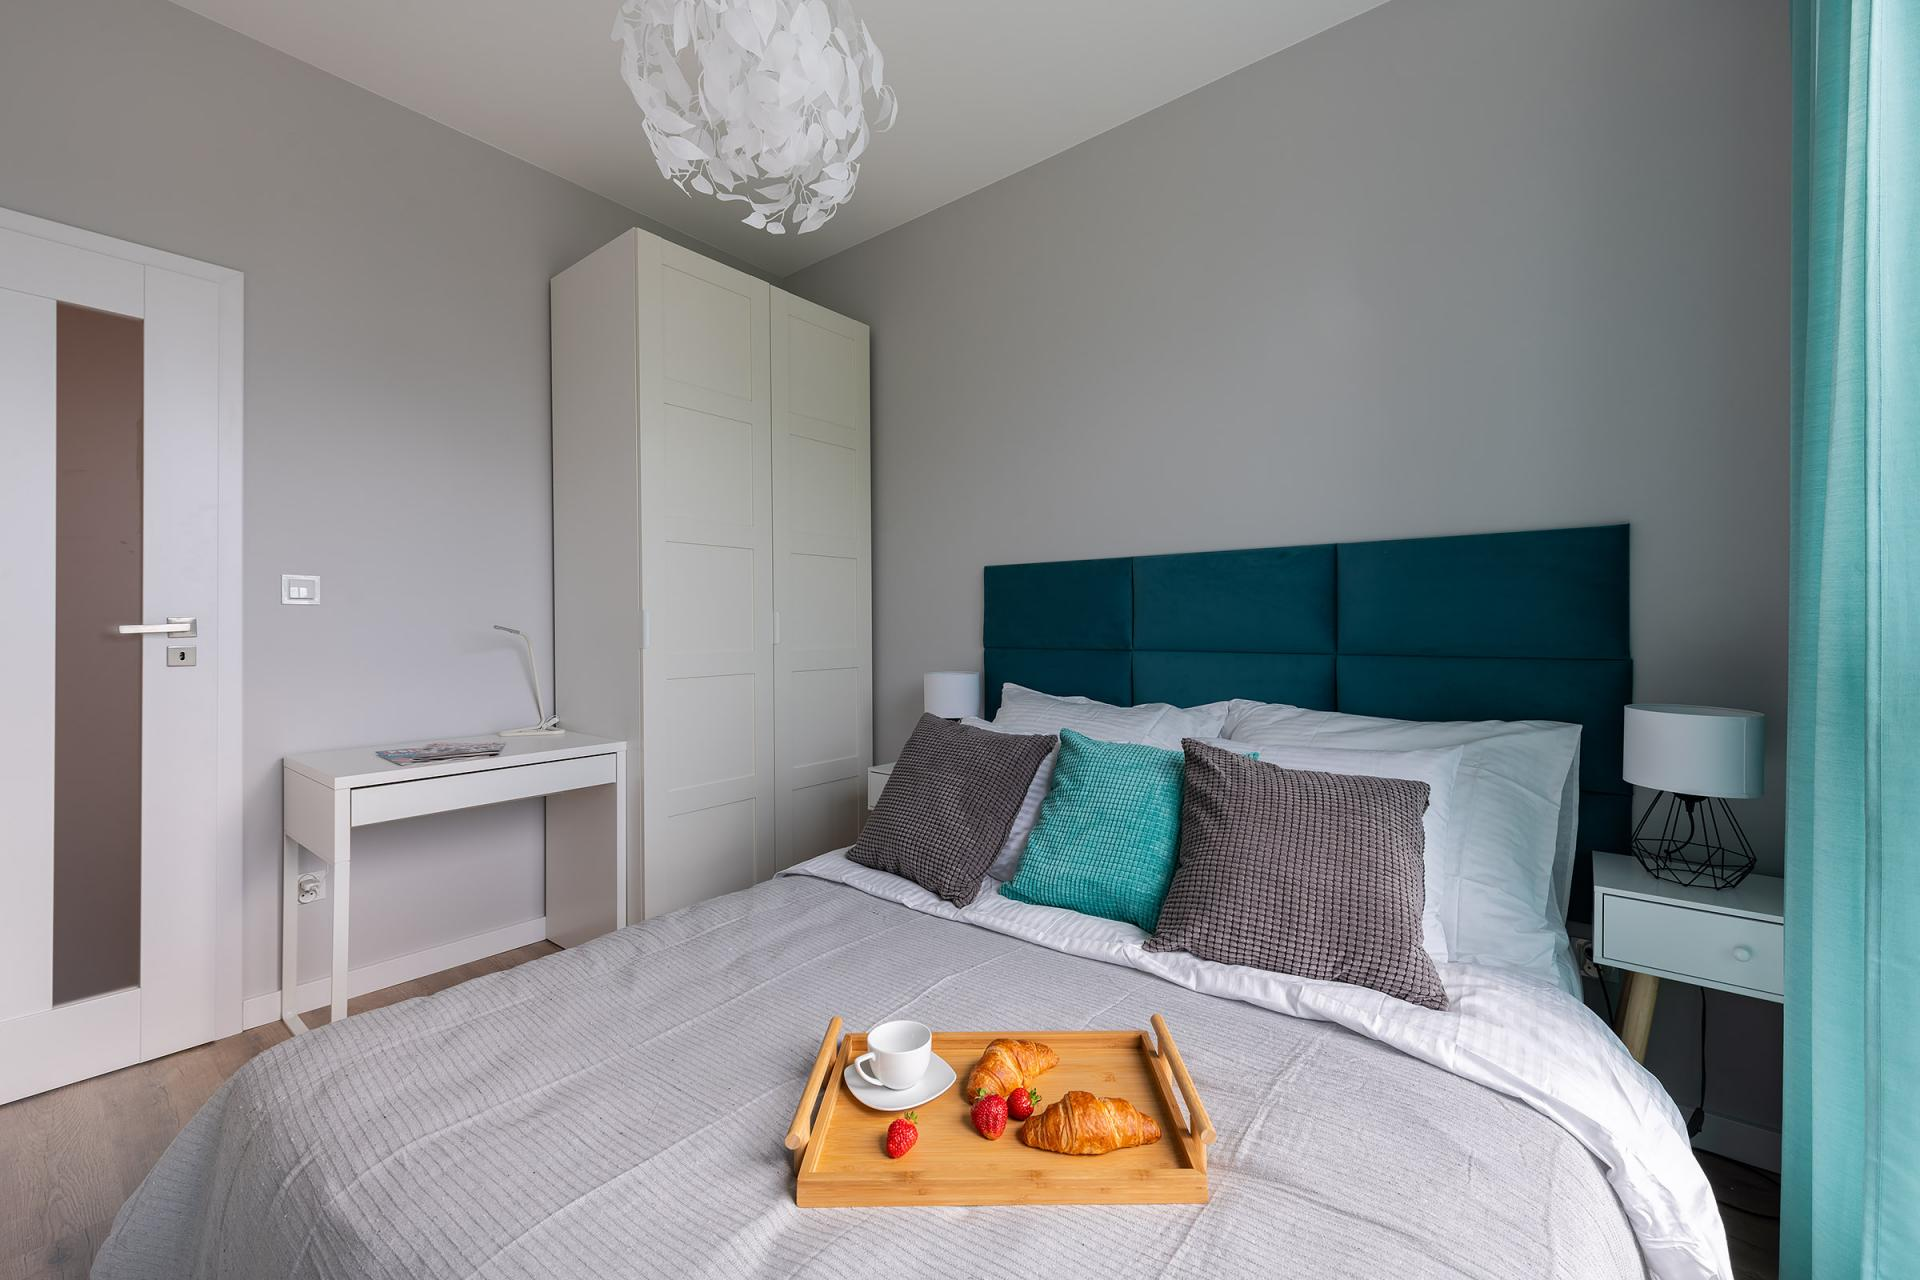 Comfortable bed at Cybernetyki 4 Apartment, Sluzewiec, Warsaw - Citybase Apartments